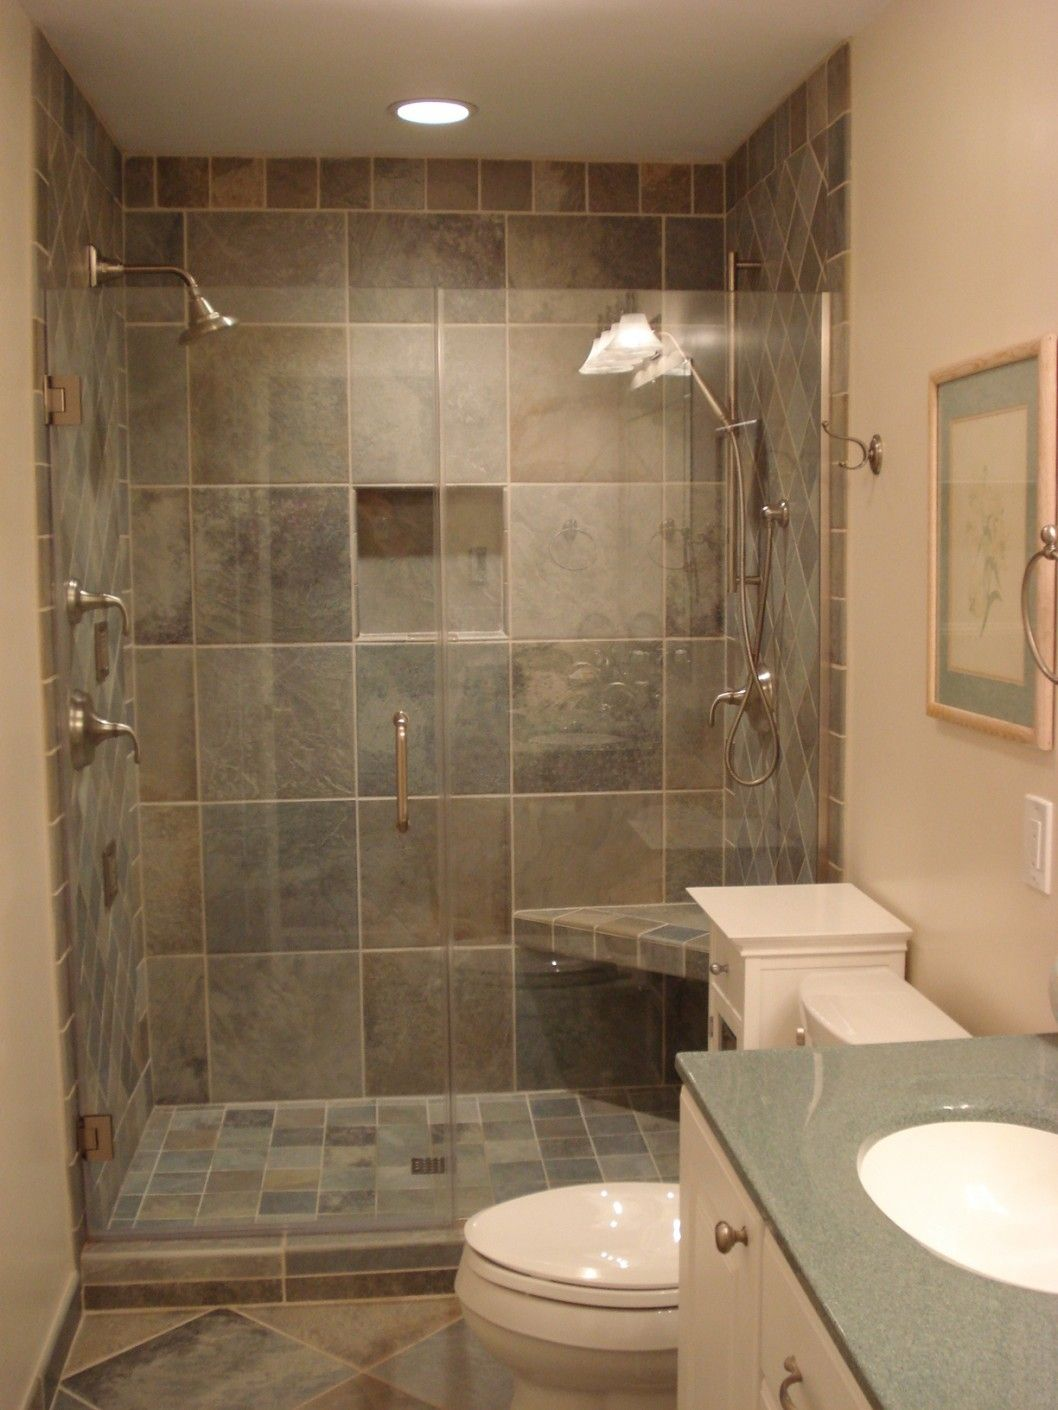 Bathroom Remodel Cost Sacramento best of ideas, remodel bathroom tub and how to remodel my bathroom